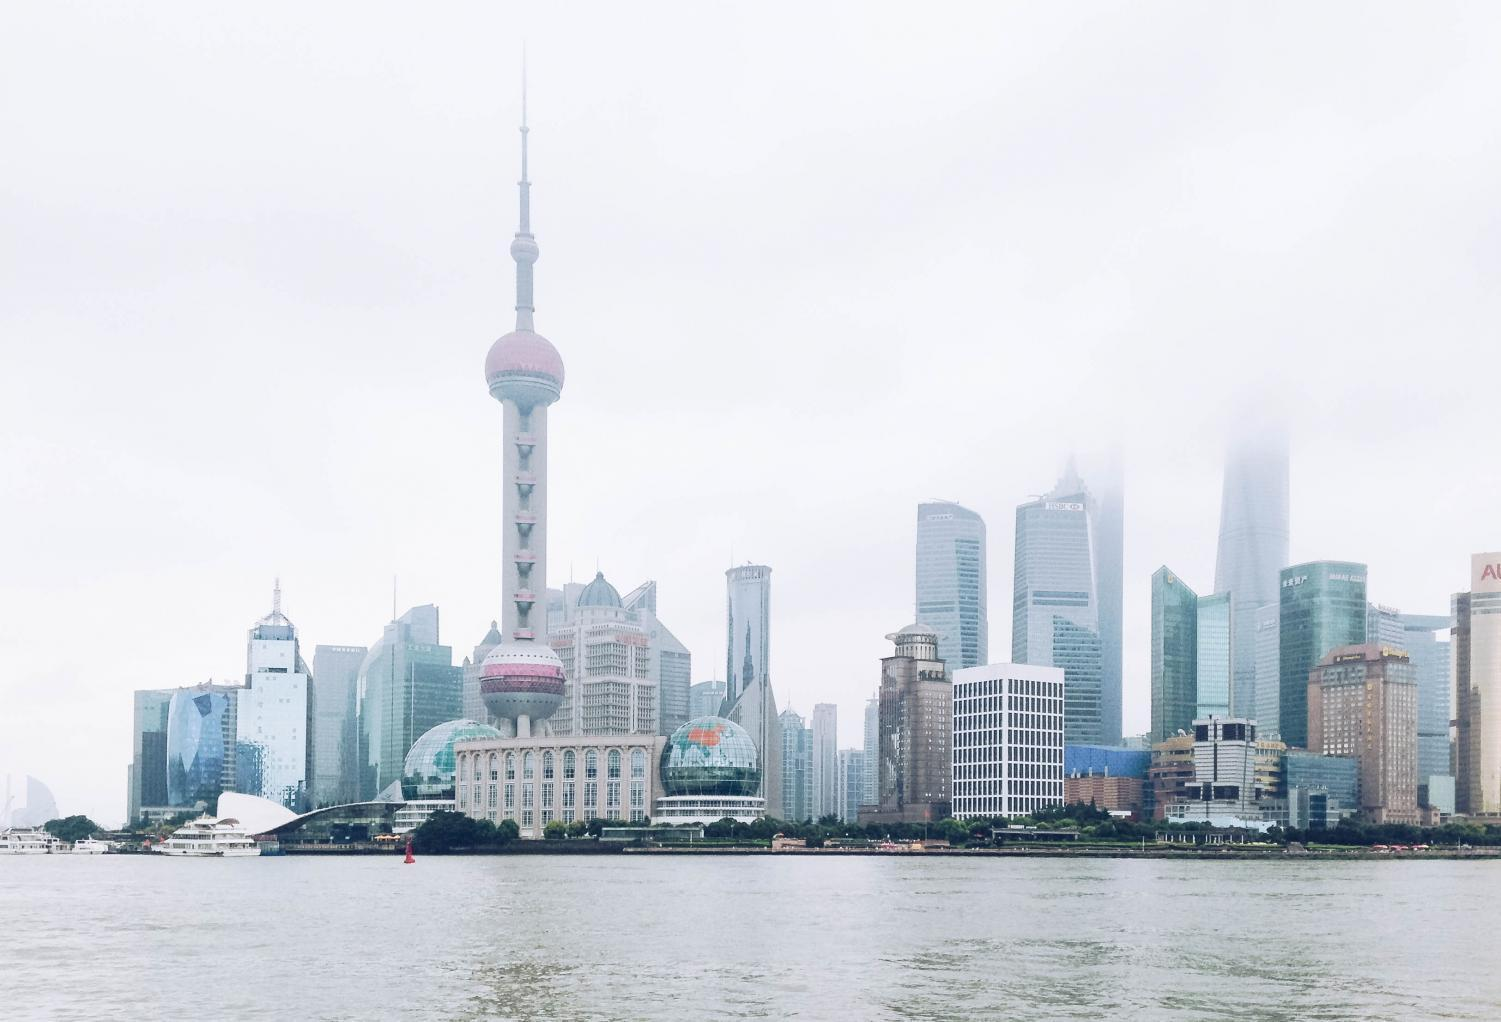 The Shanghai skyline on a foggy day.